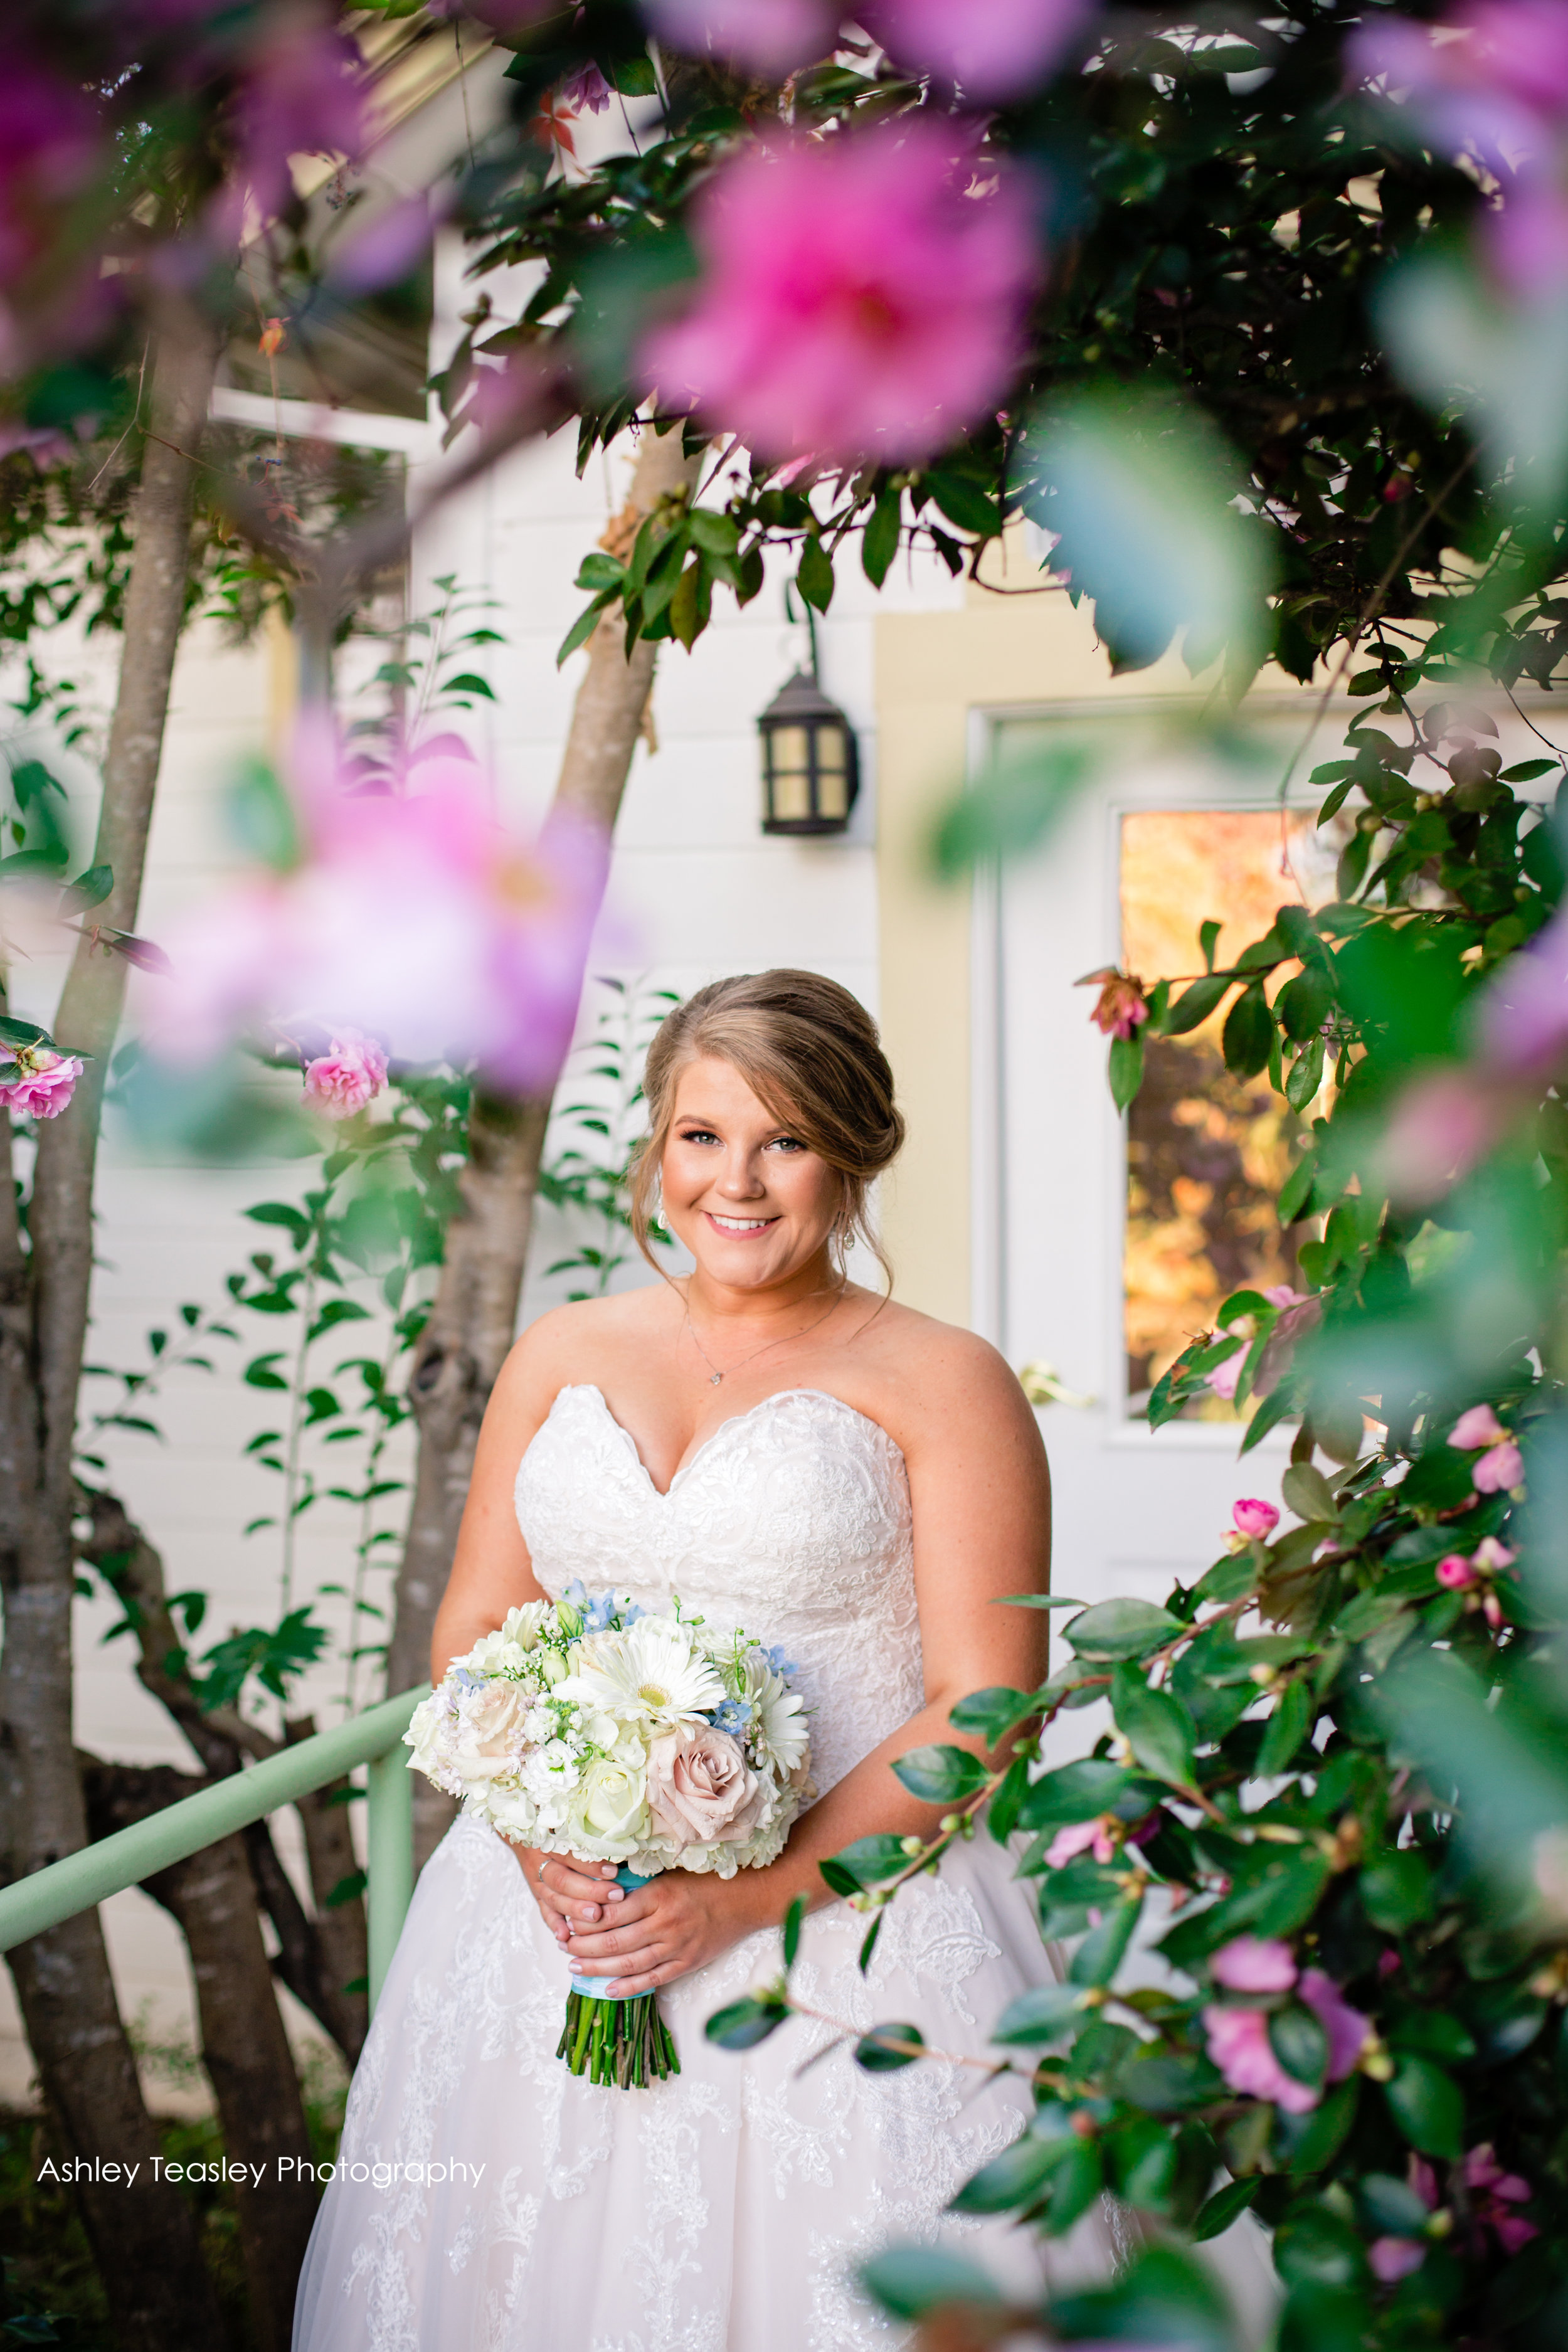 Casey & Brandon - The Flower Farm Inn - Sacramento Wedding Photographer - Ashley Teasley Photography  (1 of 5).JPG